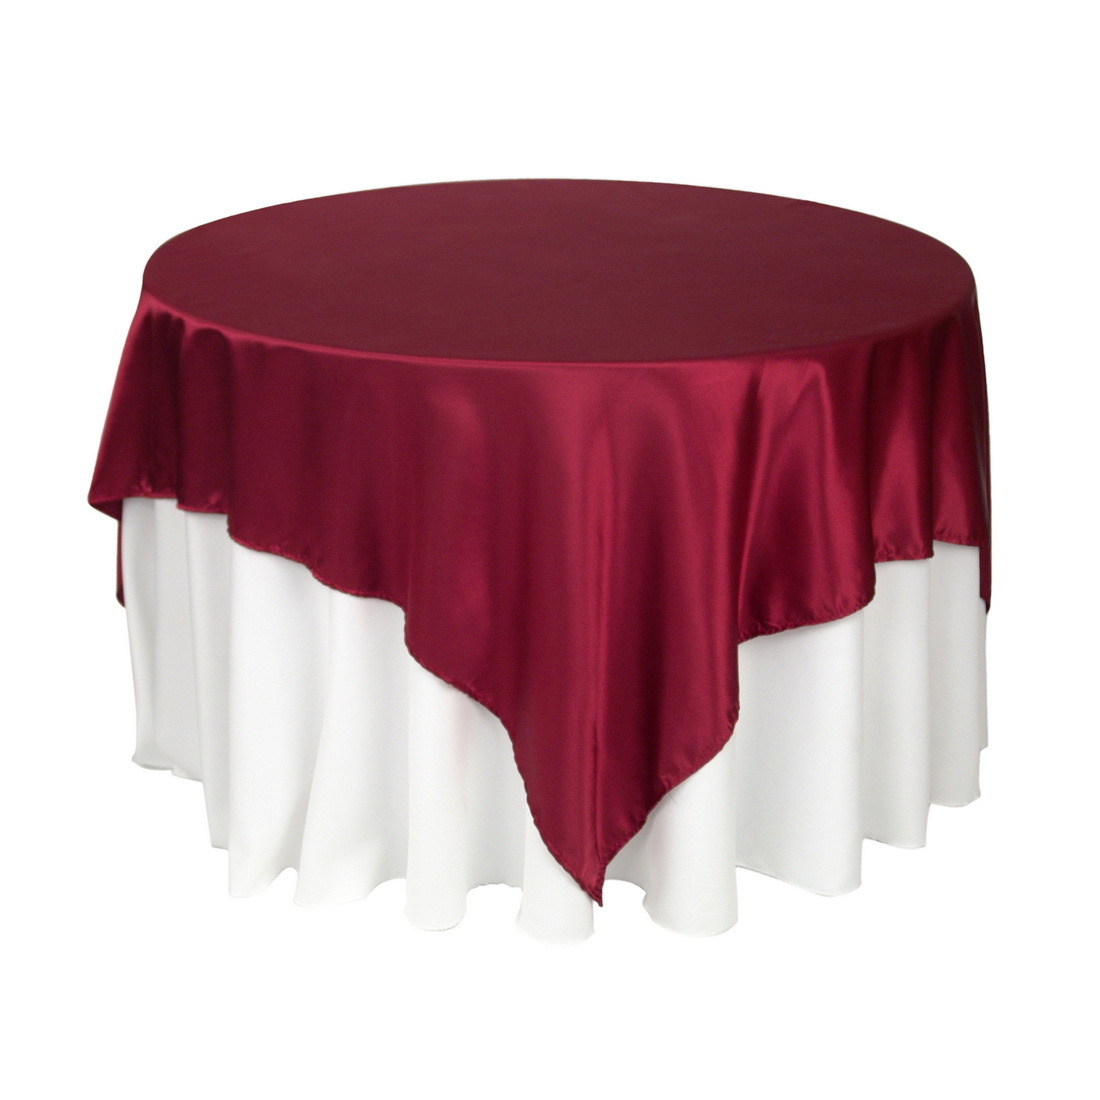 How to Buy Tablecloths for Your Wedding - wikiHow